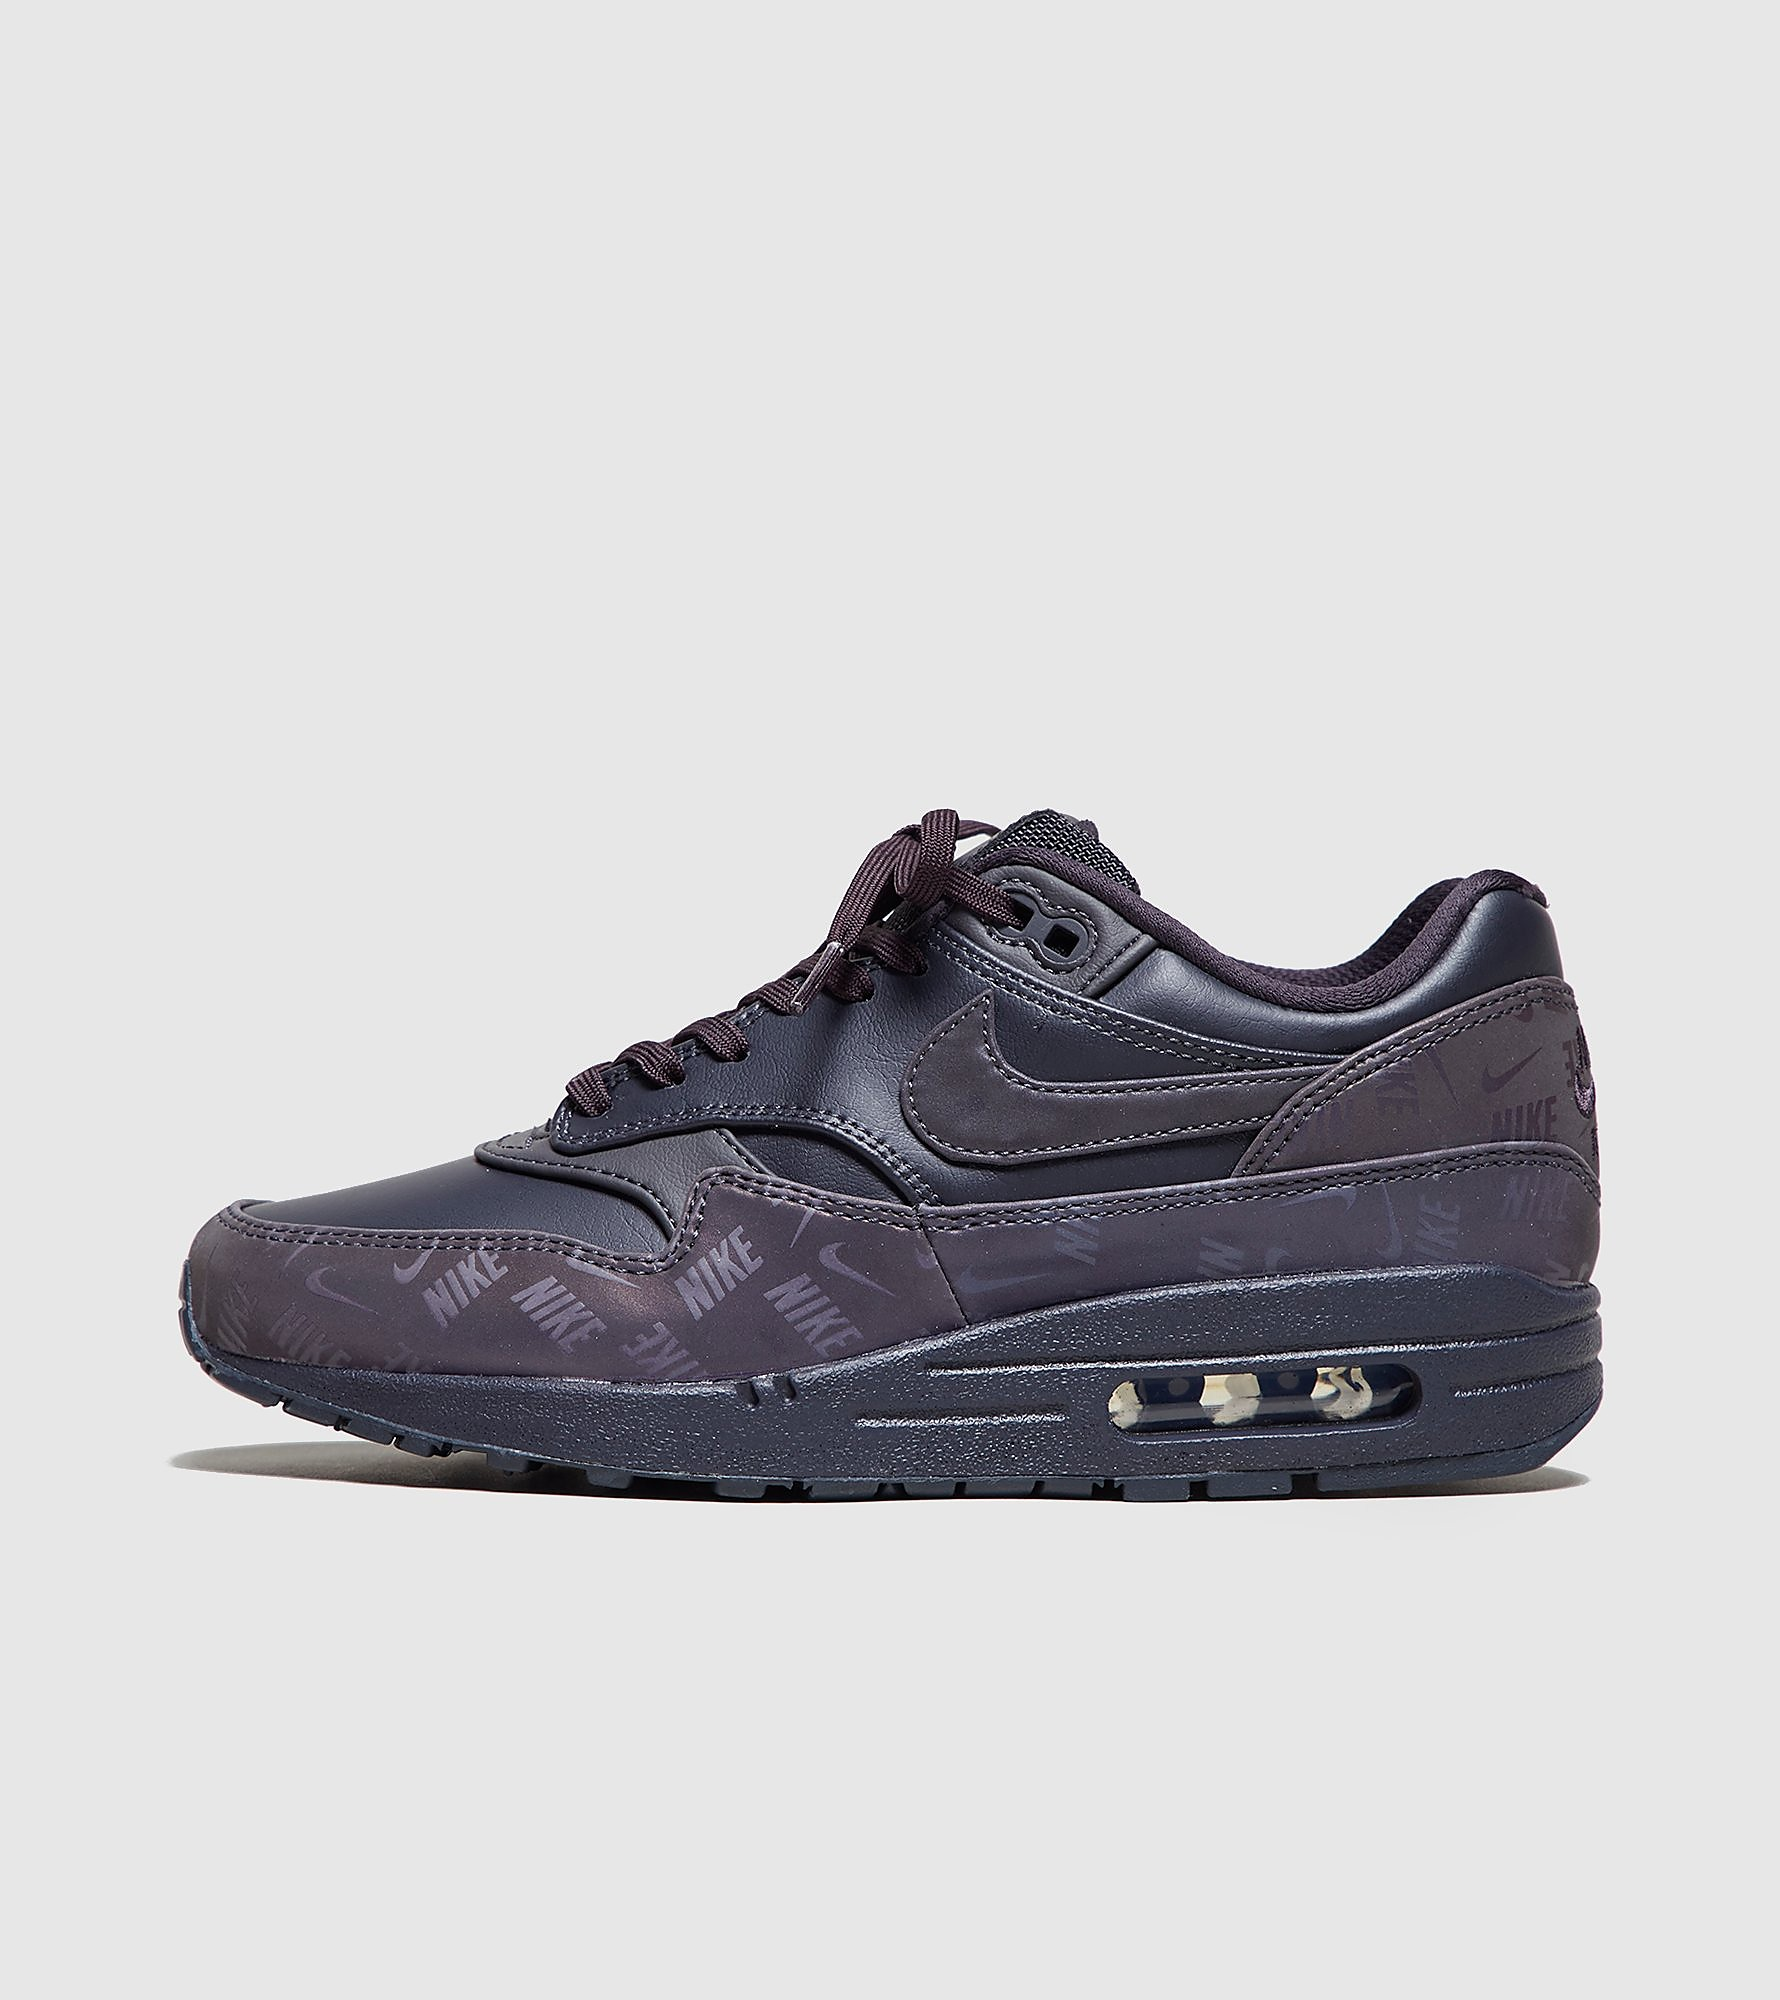 Nike Air Max 1 'Stealth' Women's